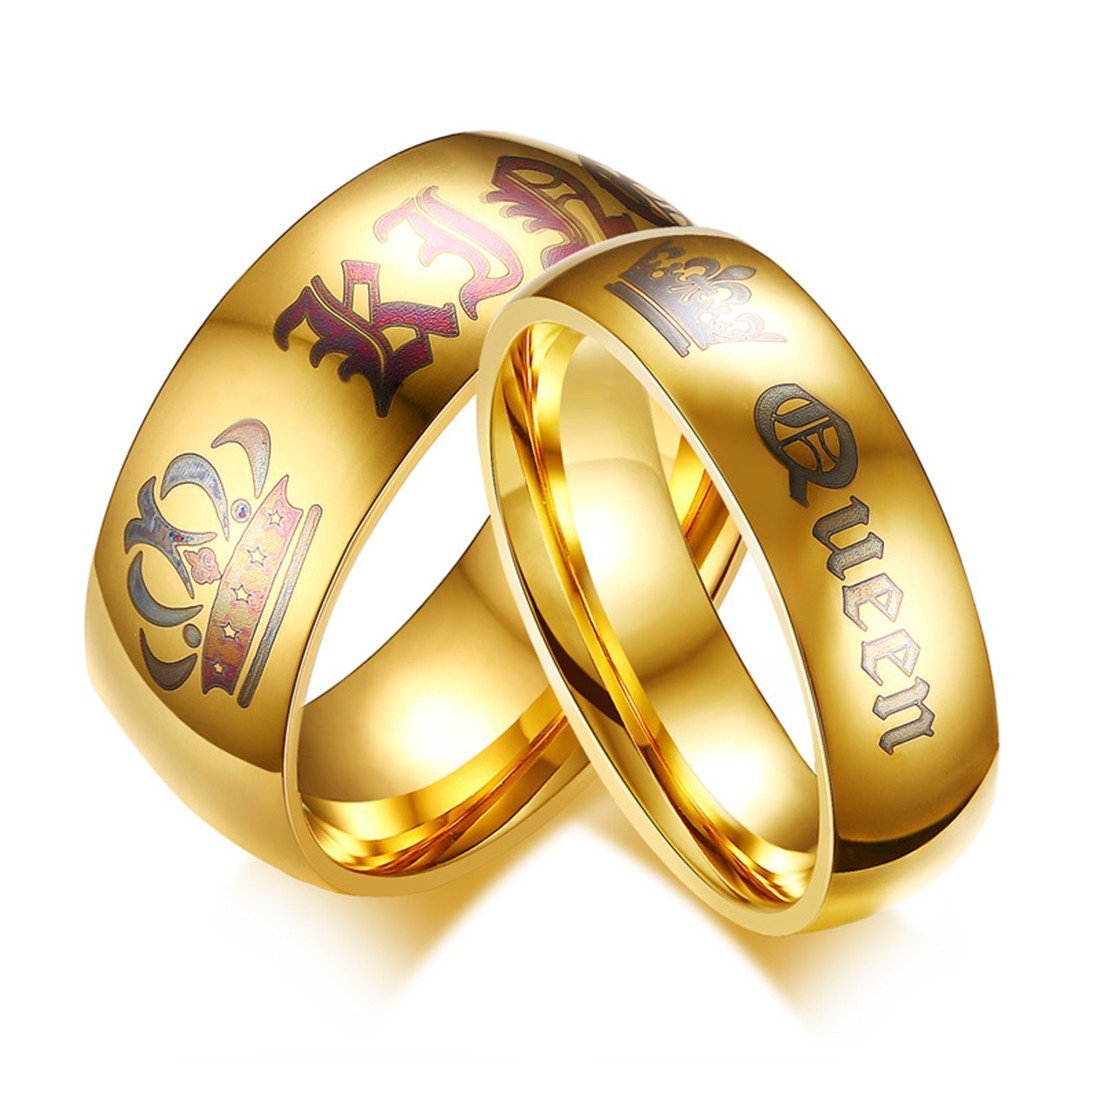 Keybella Her King/His Queen Ring Gold Stainless Steel Wedding Bands Engagement Promise Rings KeybellaRing0003